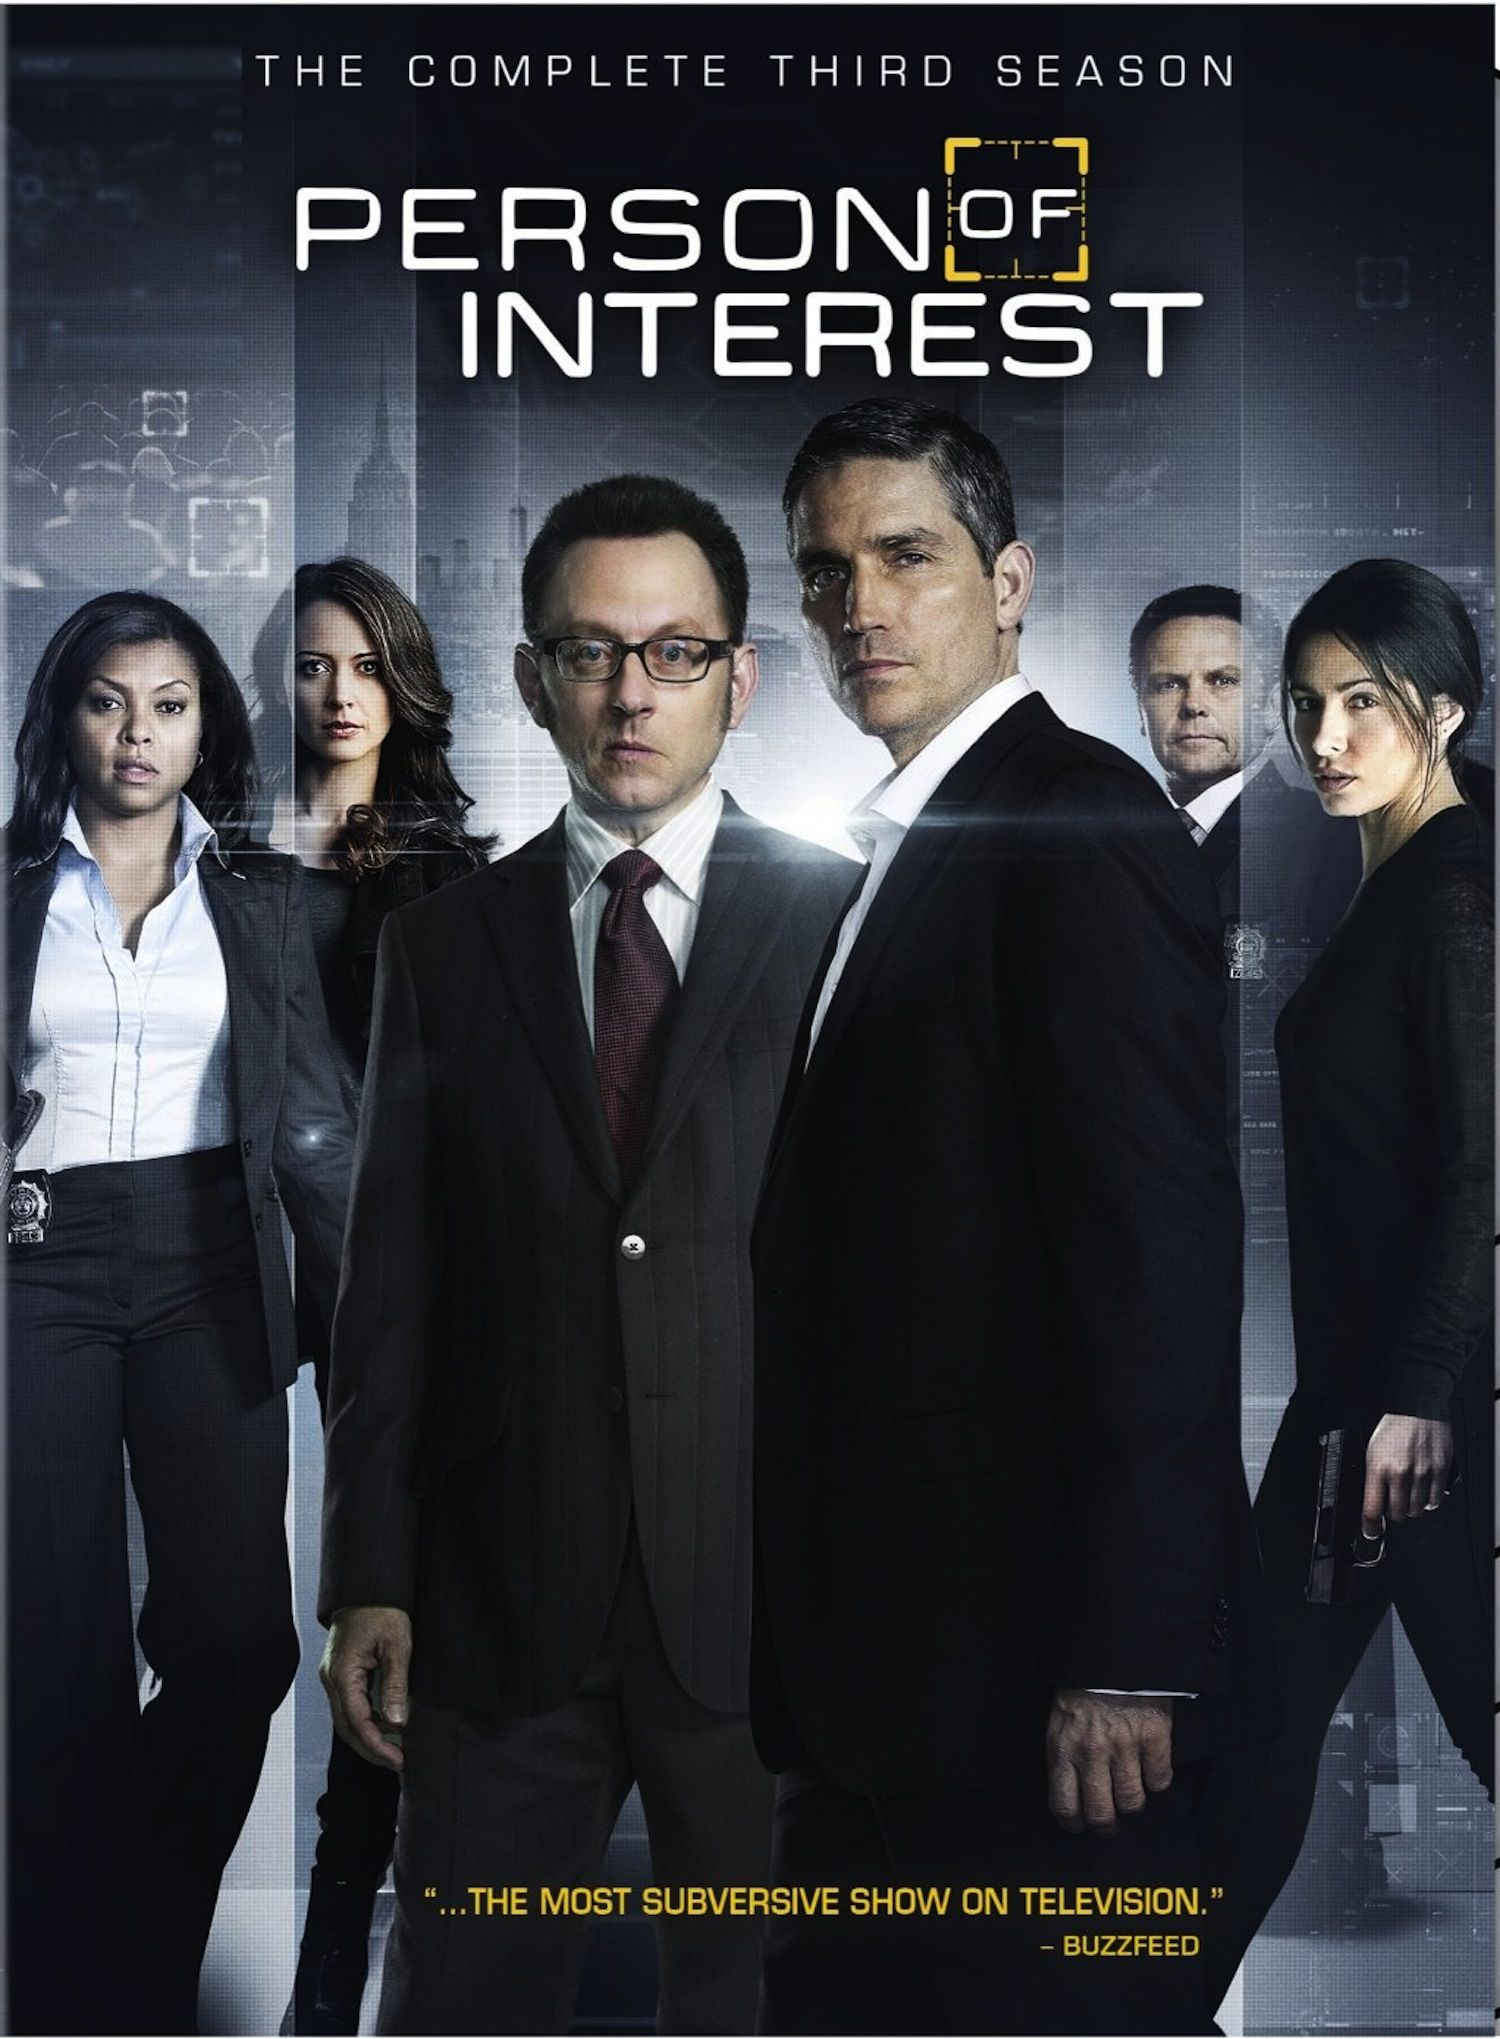 Person of Interest Season 4 premieres Wednesday on NetFlix  I cannot